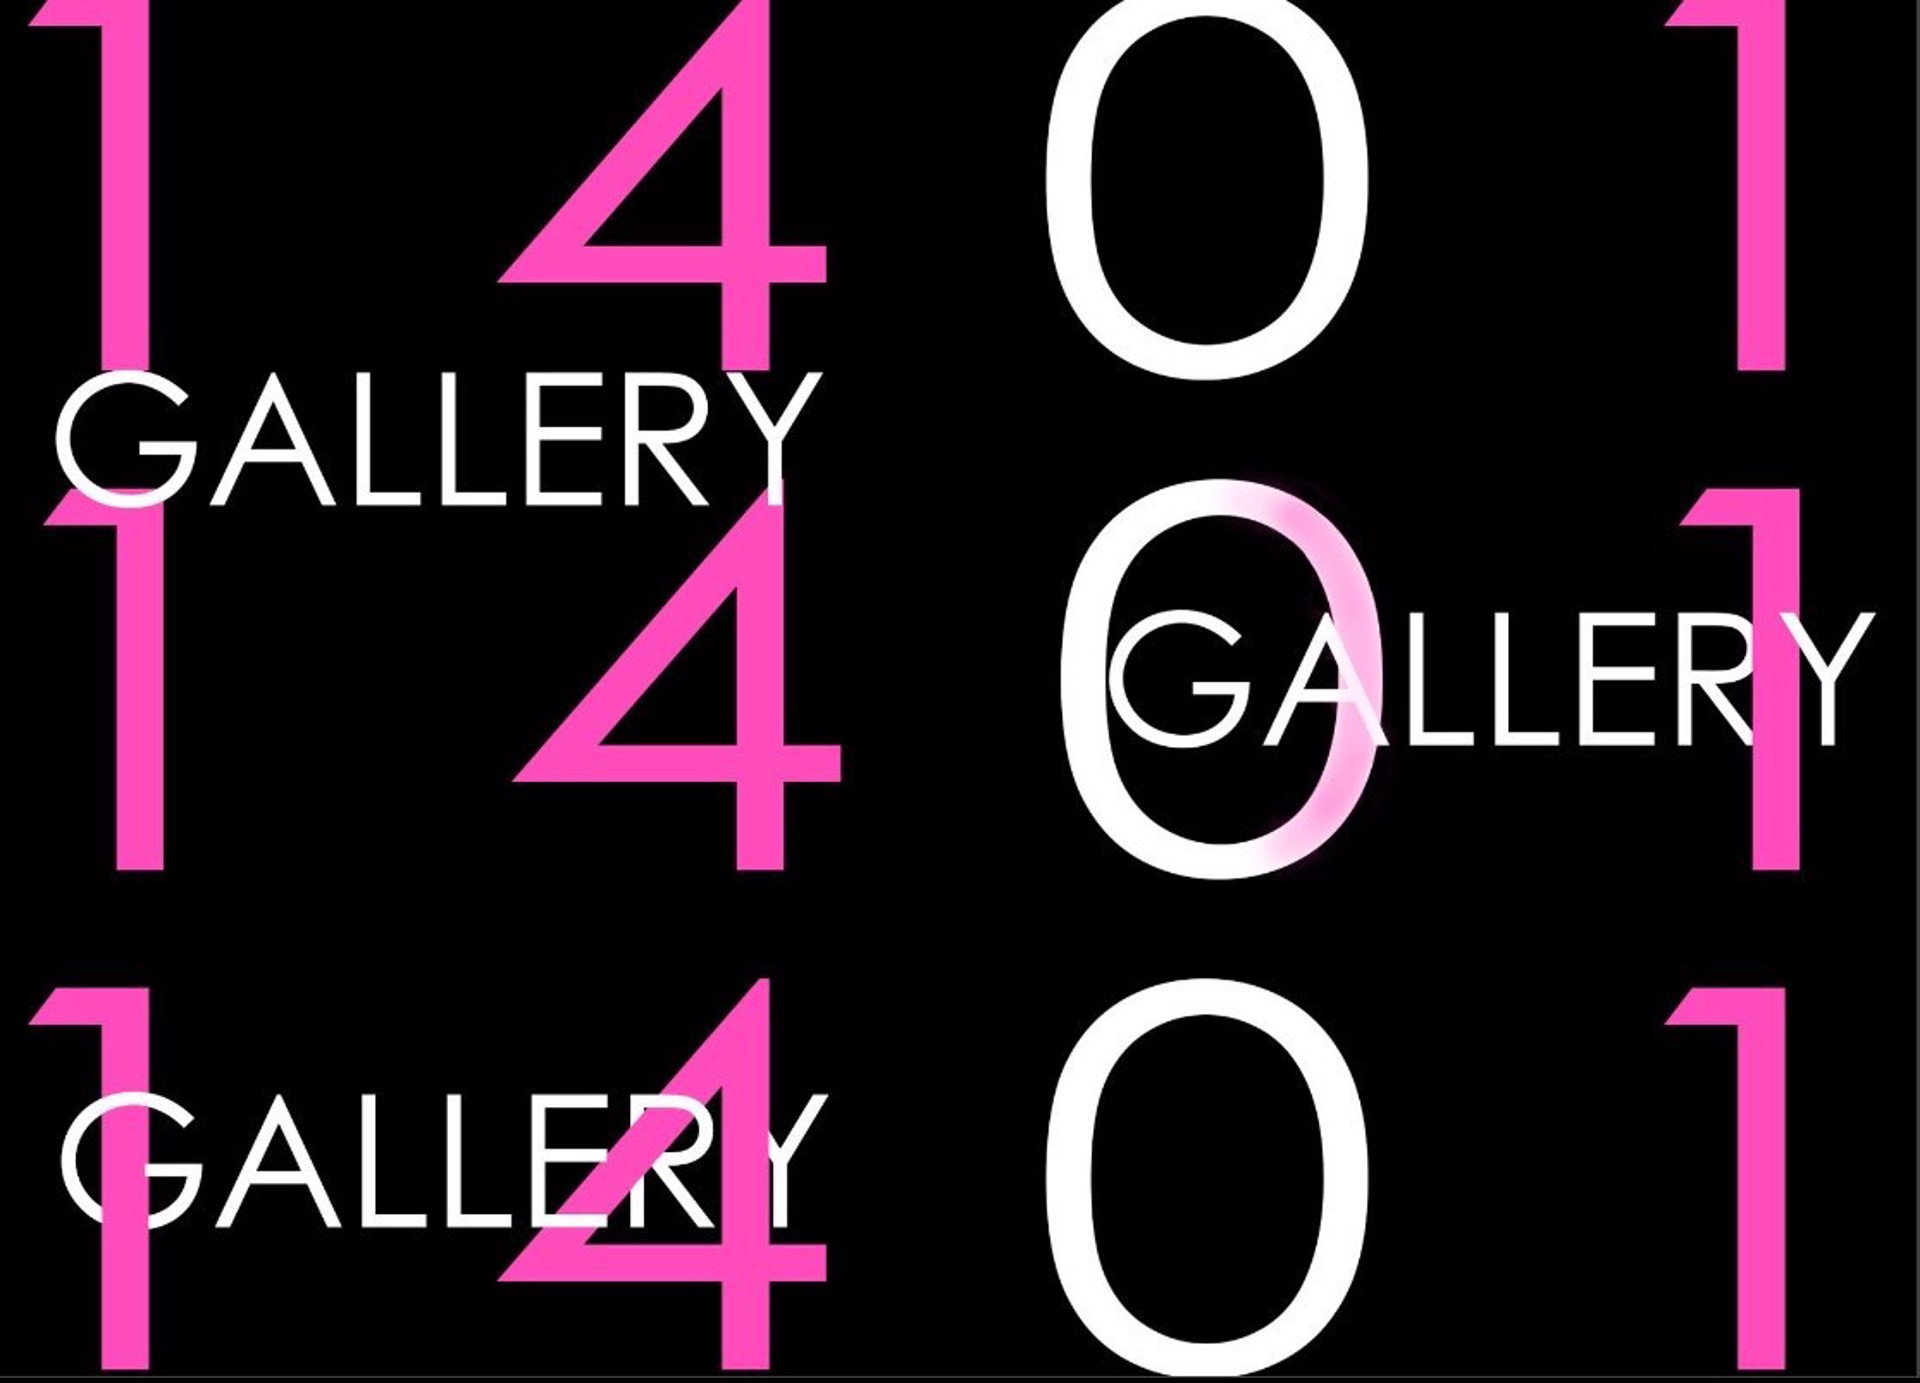 GALLERY 1401 $200 GIFT CARD